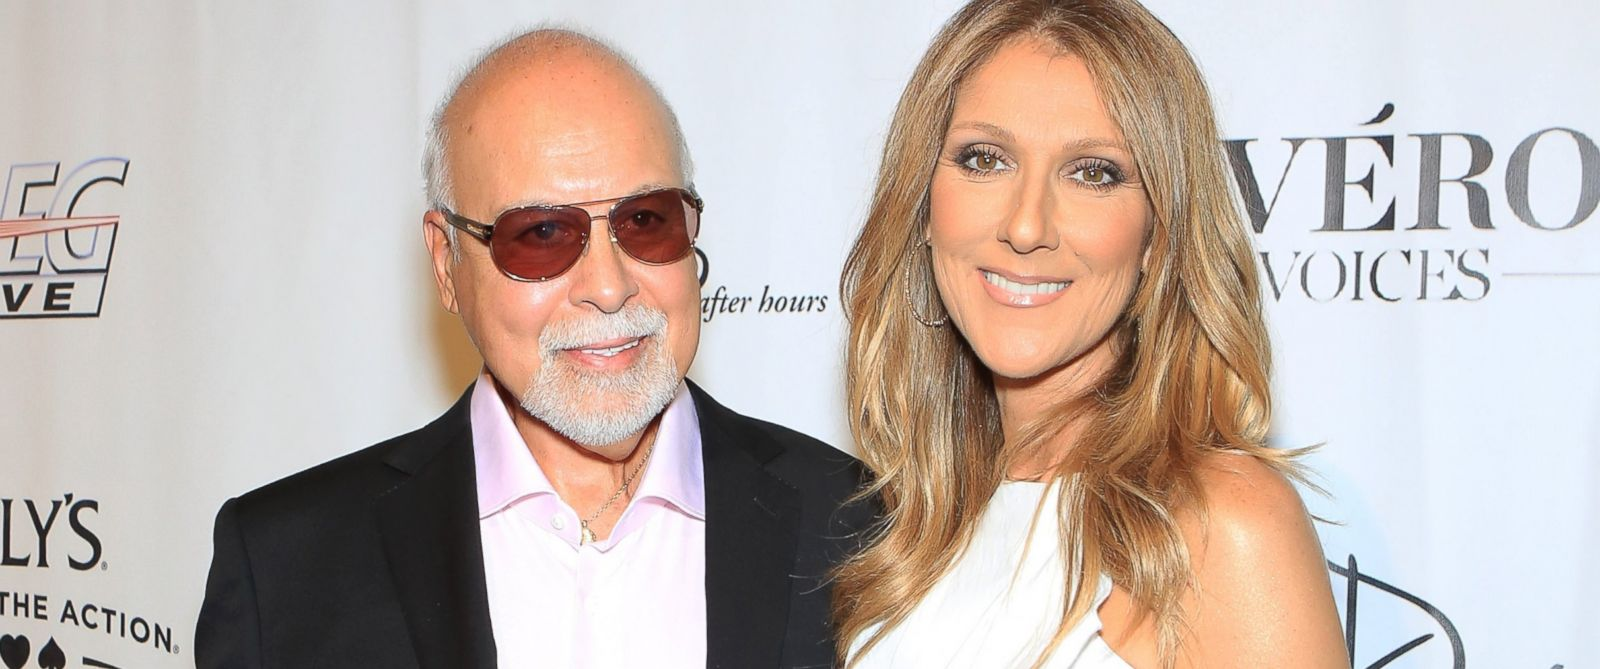 """PHOTO: Rene Angelil, left, and Celine Dion arrive at the premiere of the show """"Veronic Voices"""" at Ballys Las Vegas, June 28, 2013 in Las Vegas."""